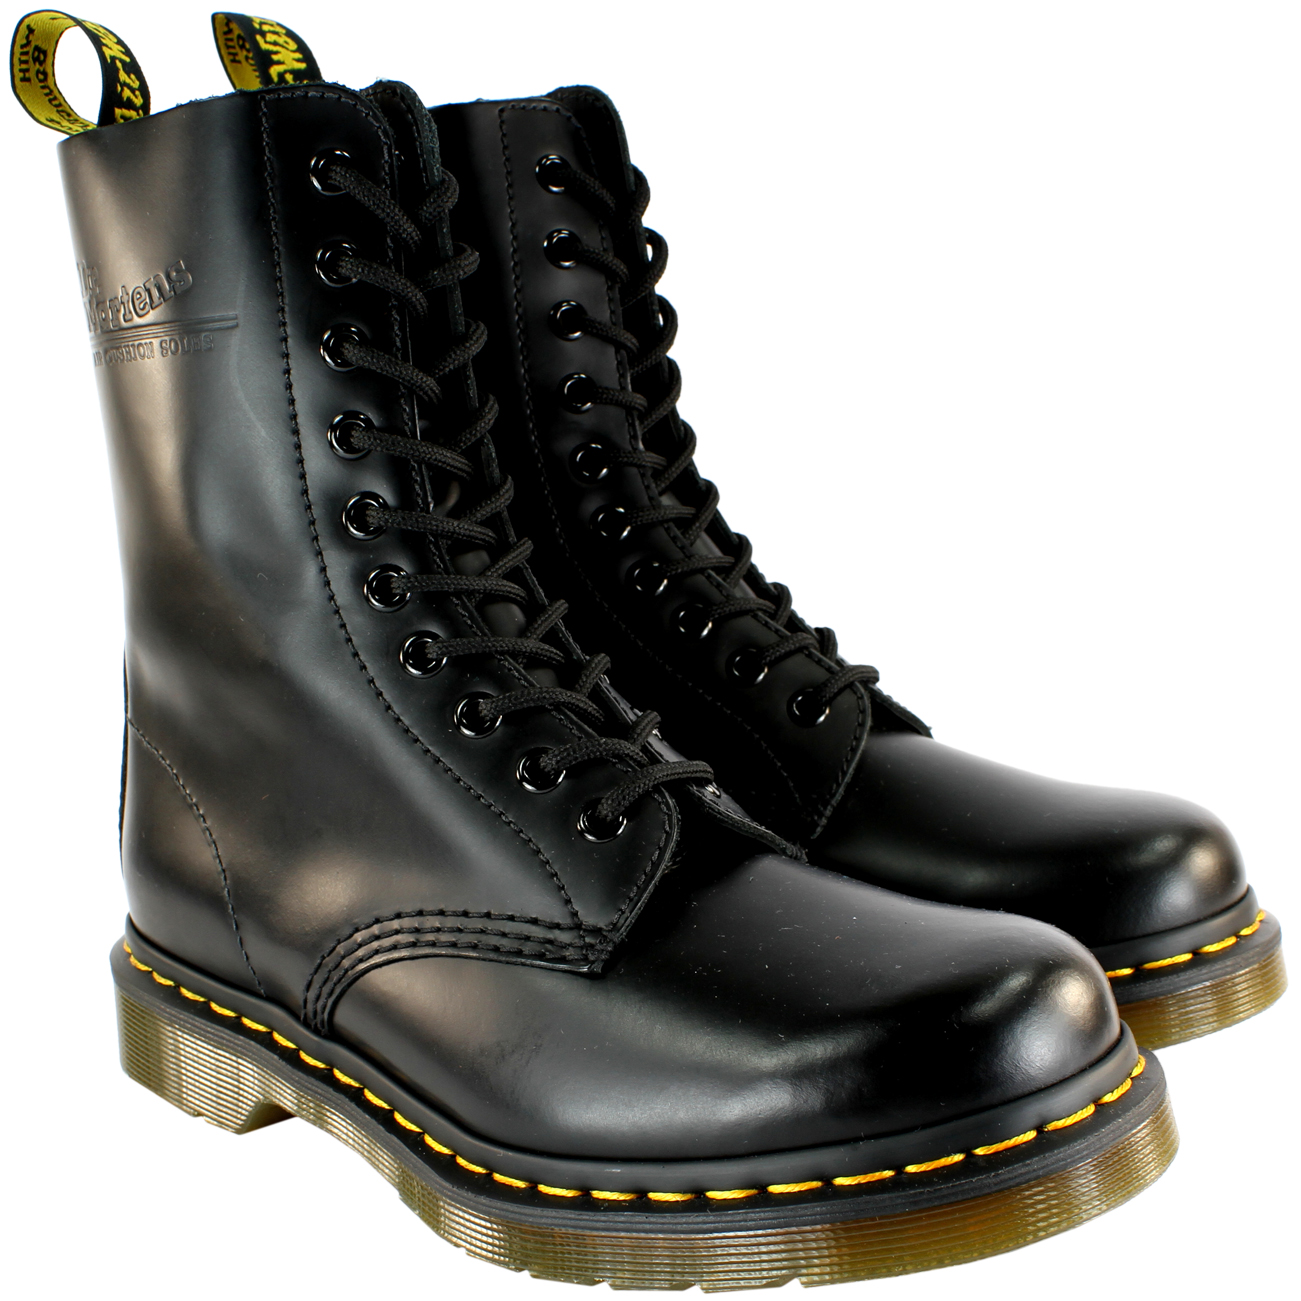 221f56a44f9 Details about Mens Dr Martens Classic 1490 Black Vintage Leather Lace Up  Boots US Sizes 8-13